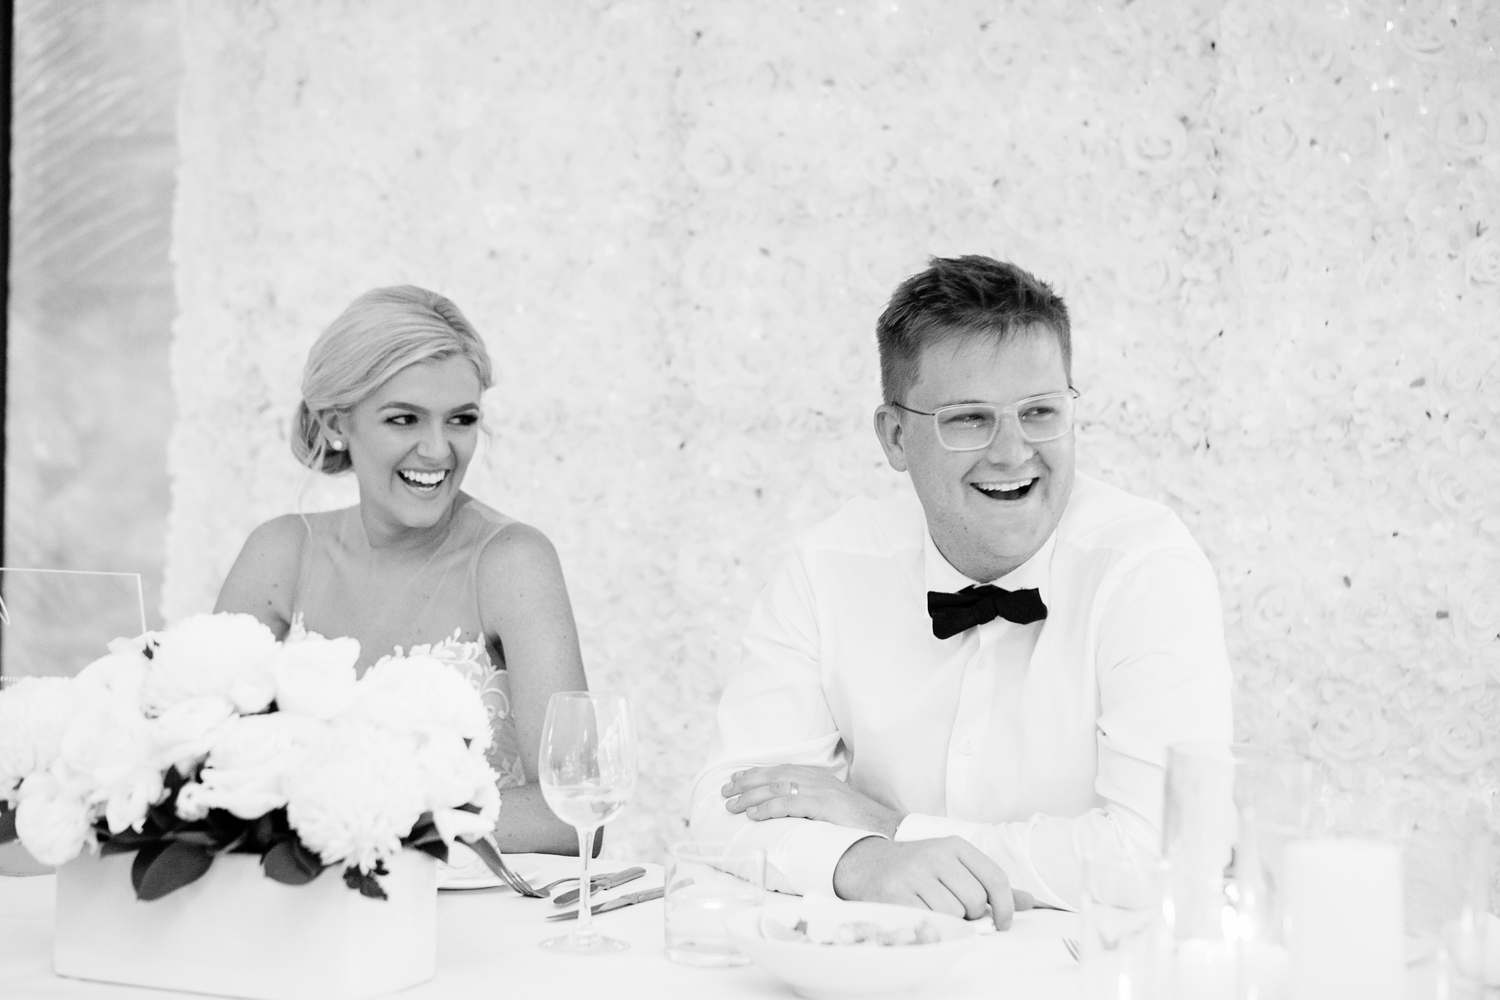 wedding-0157-outrigger-reception-laughing-happy-brisbane.jpg